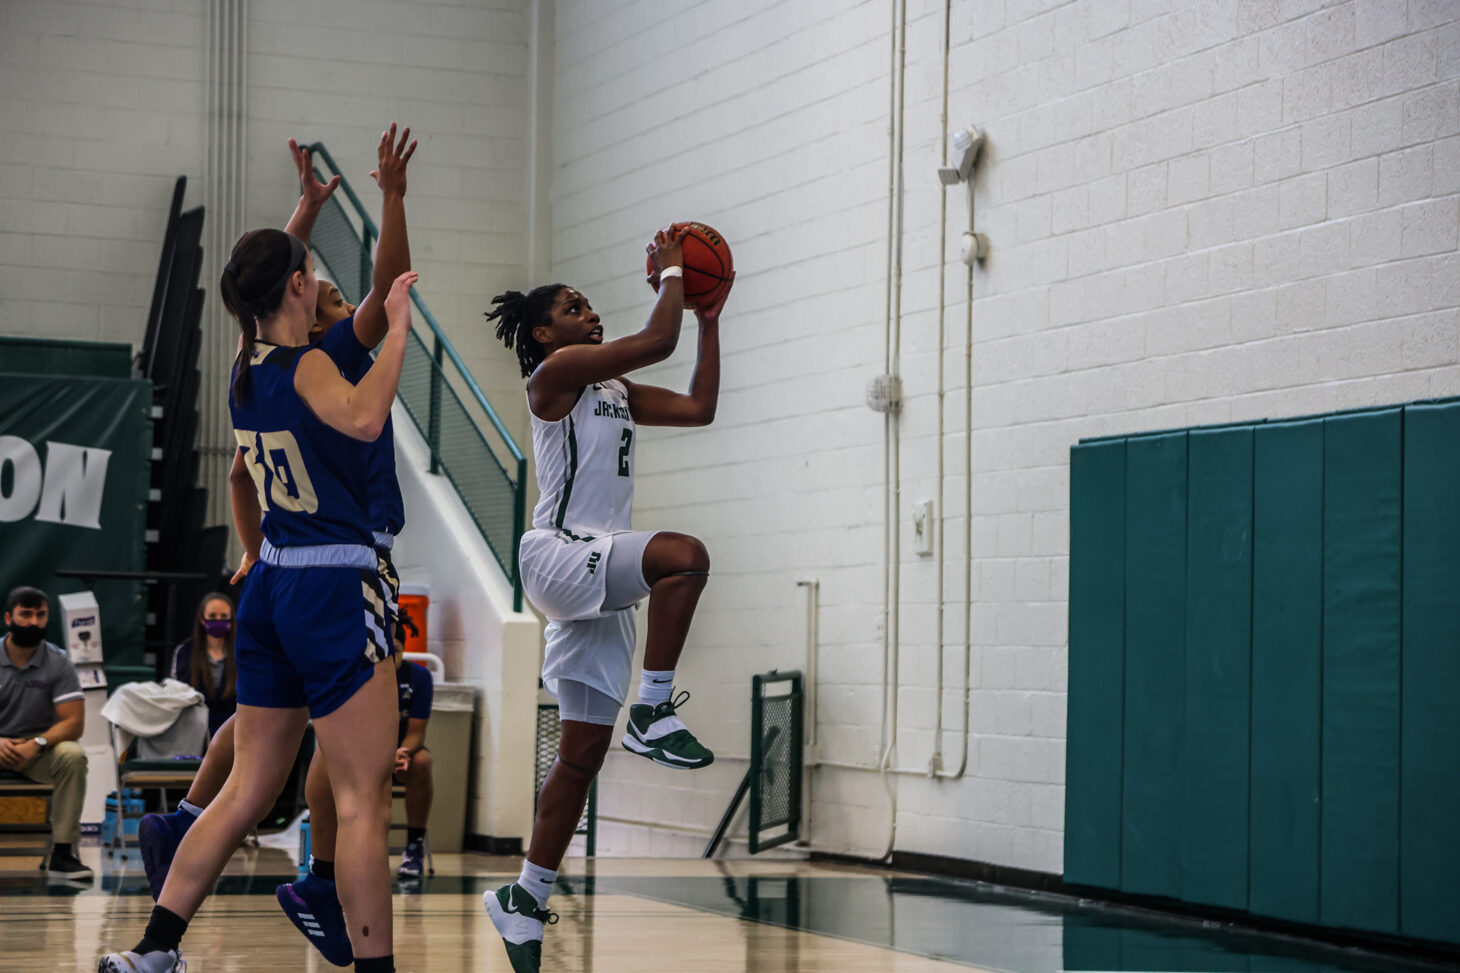 """Head Coach Kevin Baker: """"Before Erin got hurt last season she was one of the top players in her respective conference. She has the ability and athleticism to be an outstanding UTEP Miner for years to come…"""""""